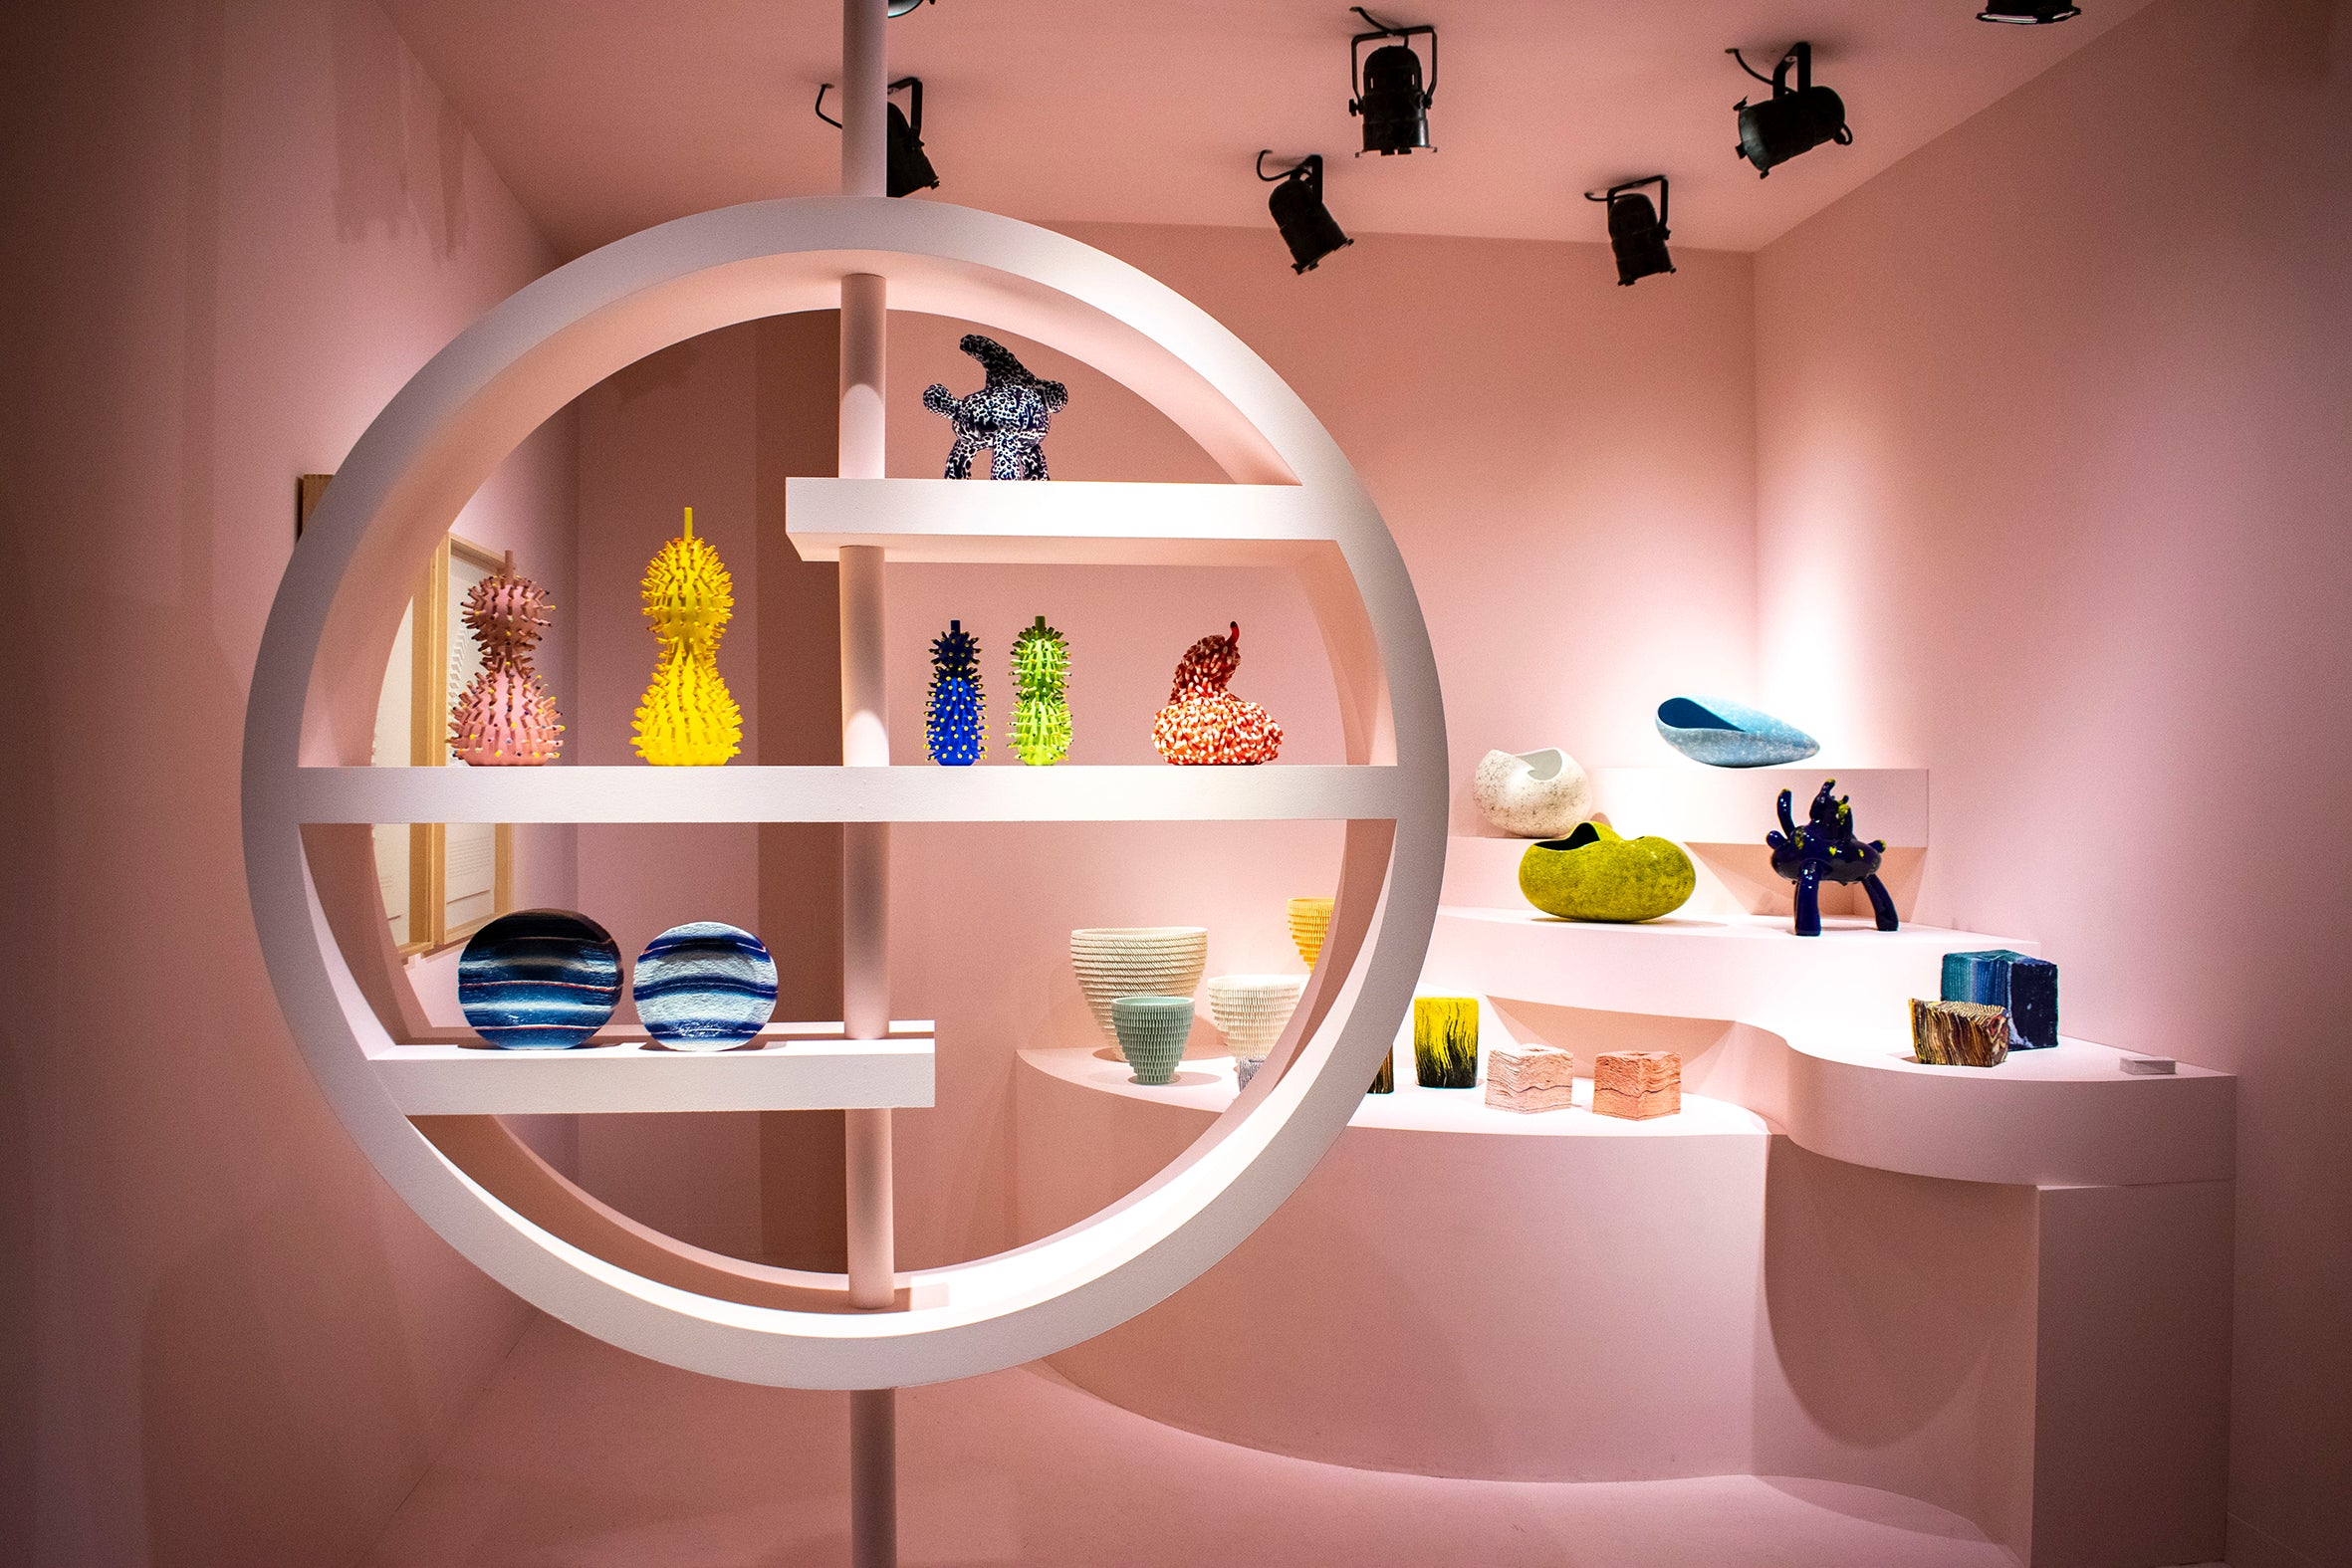 J Lohmann Gallery on display at Design Miami